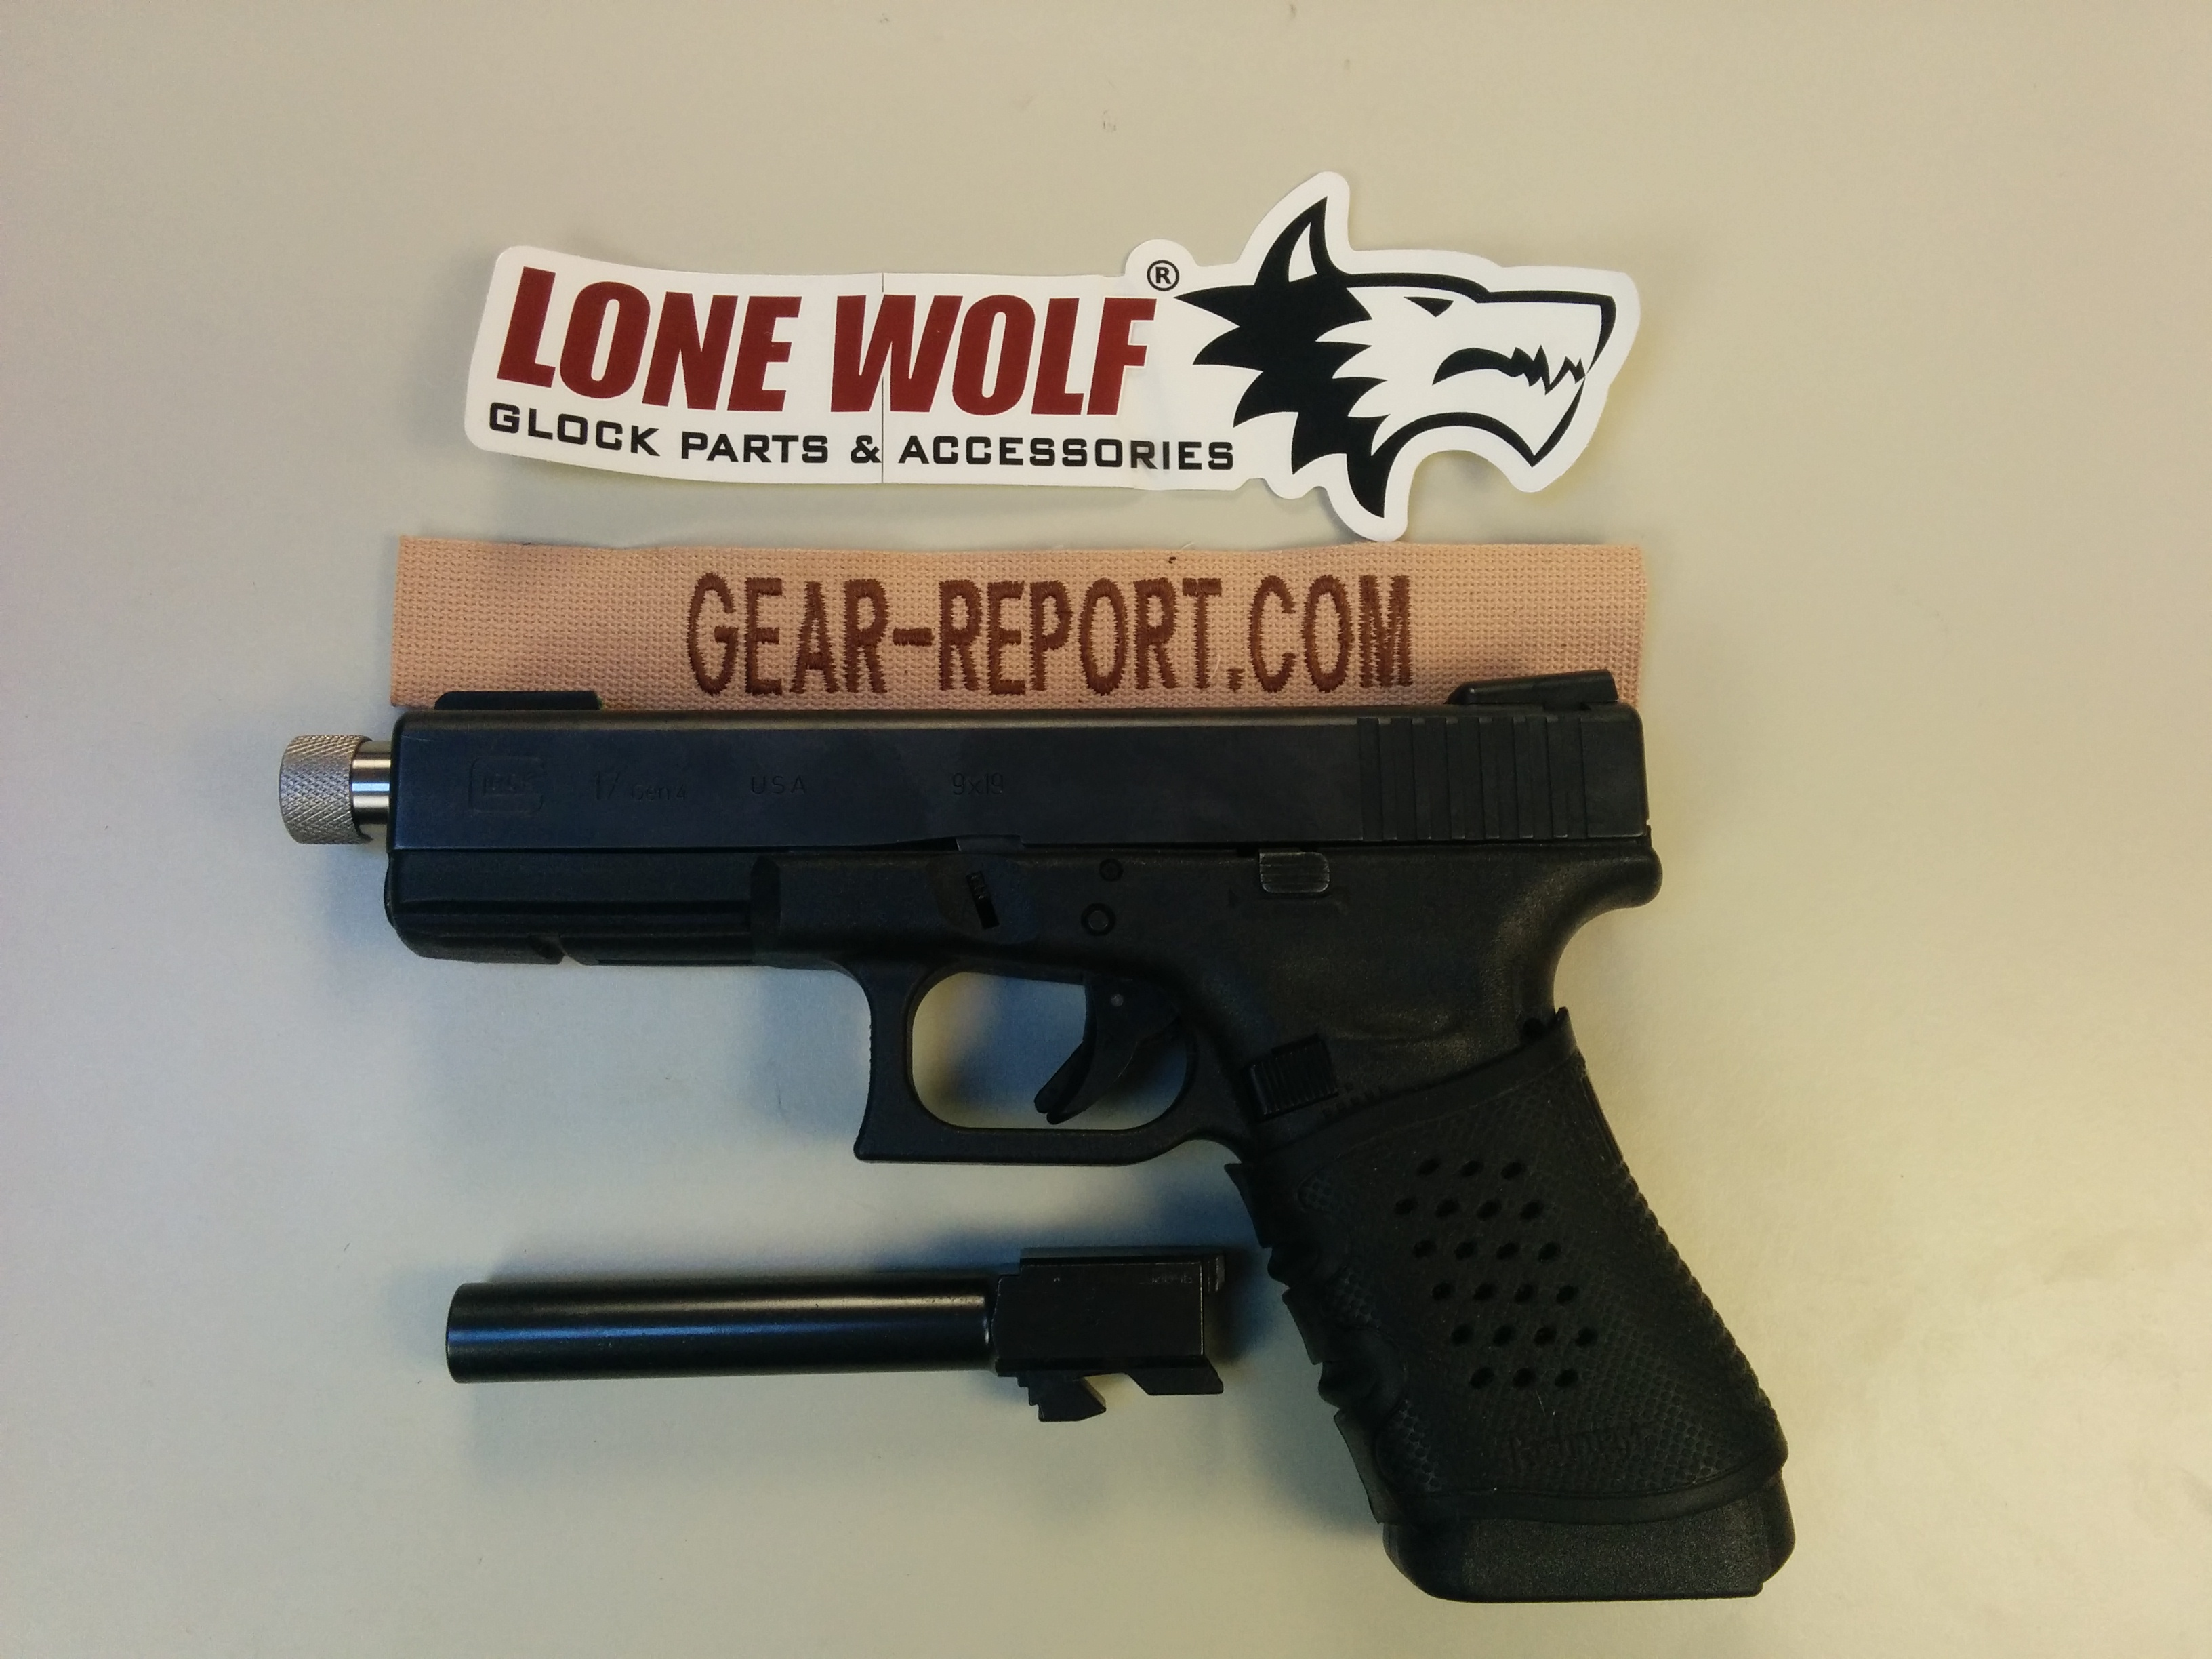 Lone Wolf Distributors LWD-17TH Threaded Glock Barrel Review